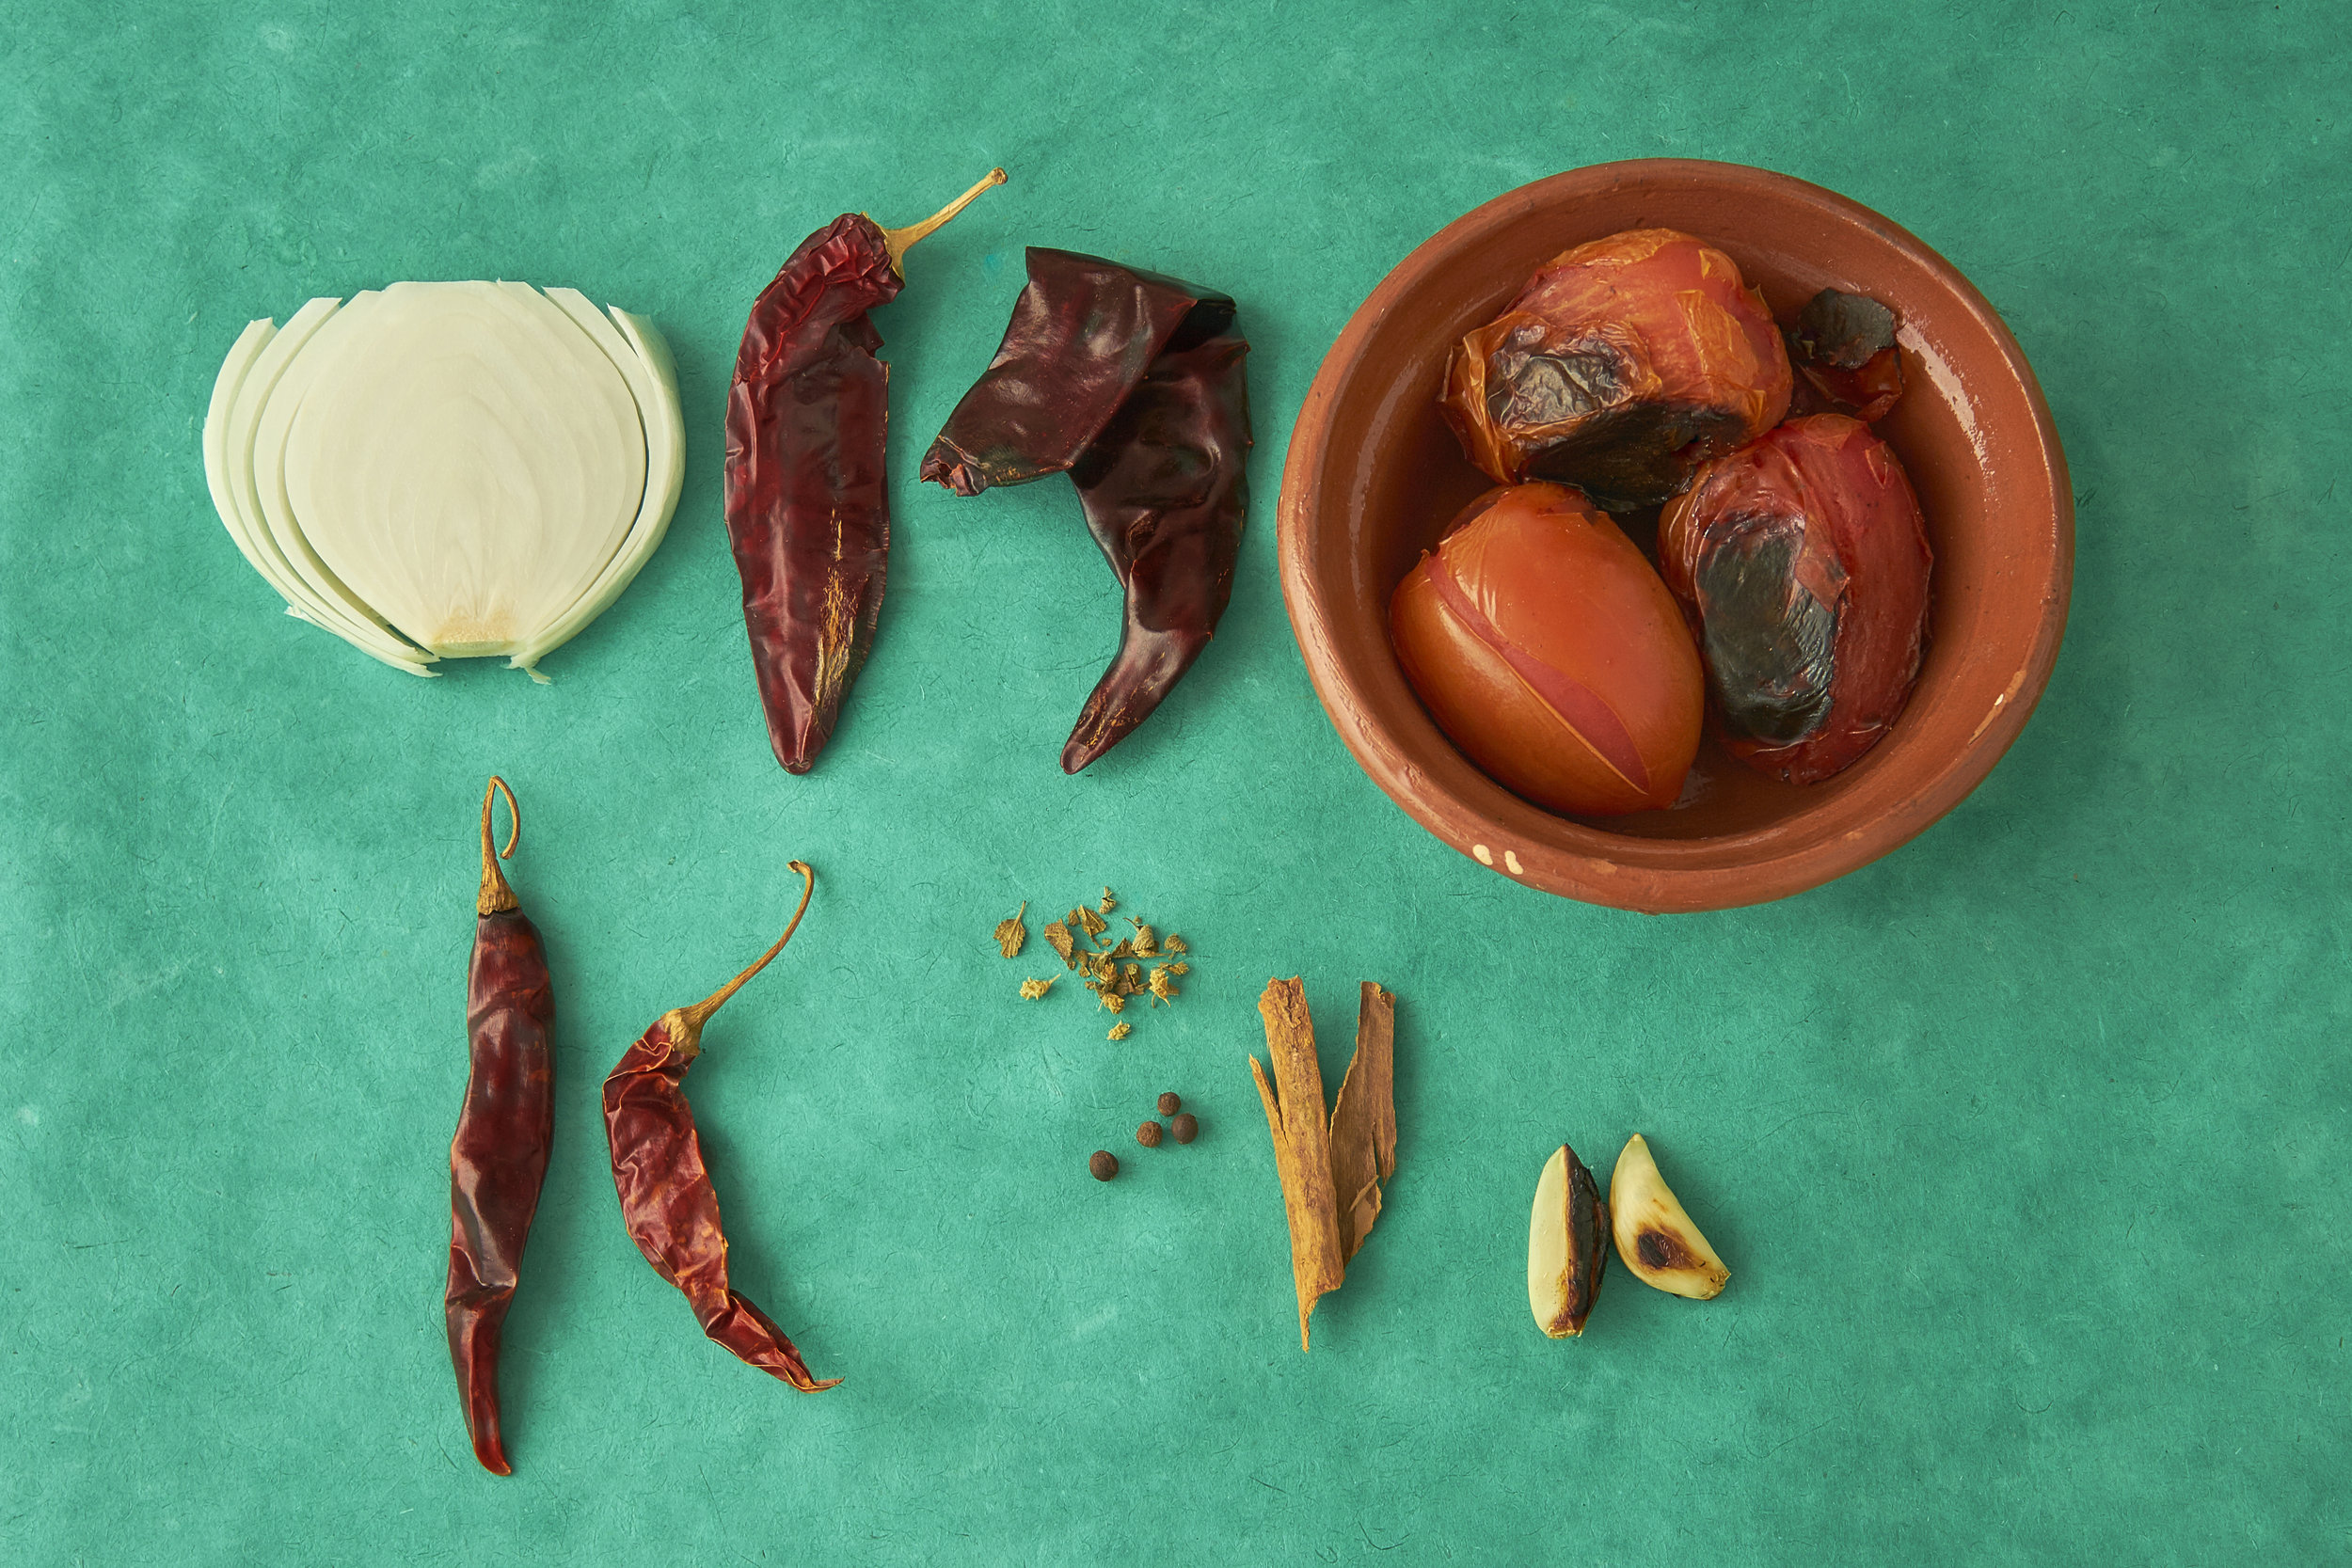 Chile Relleno Sauce Ingredients